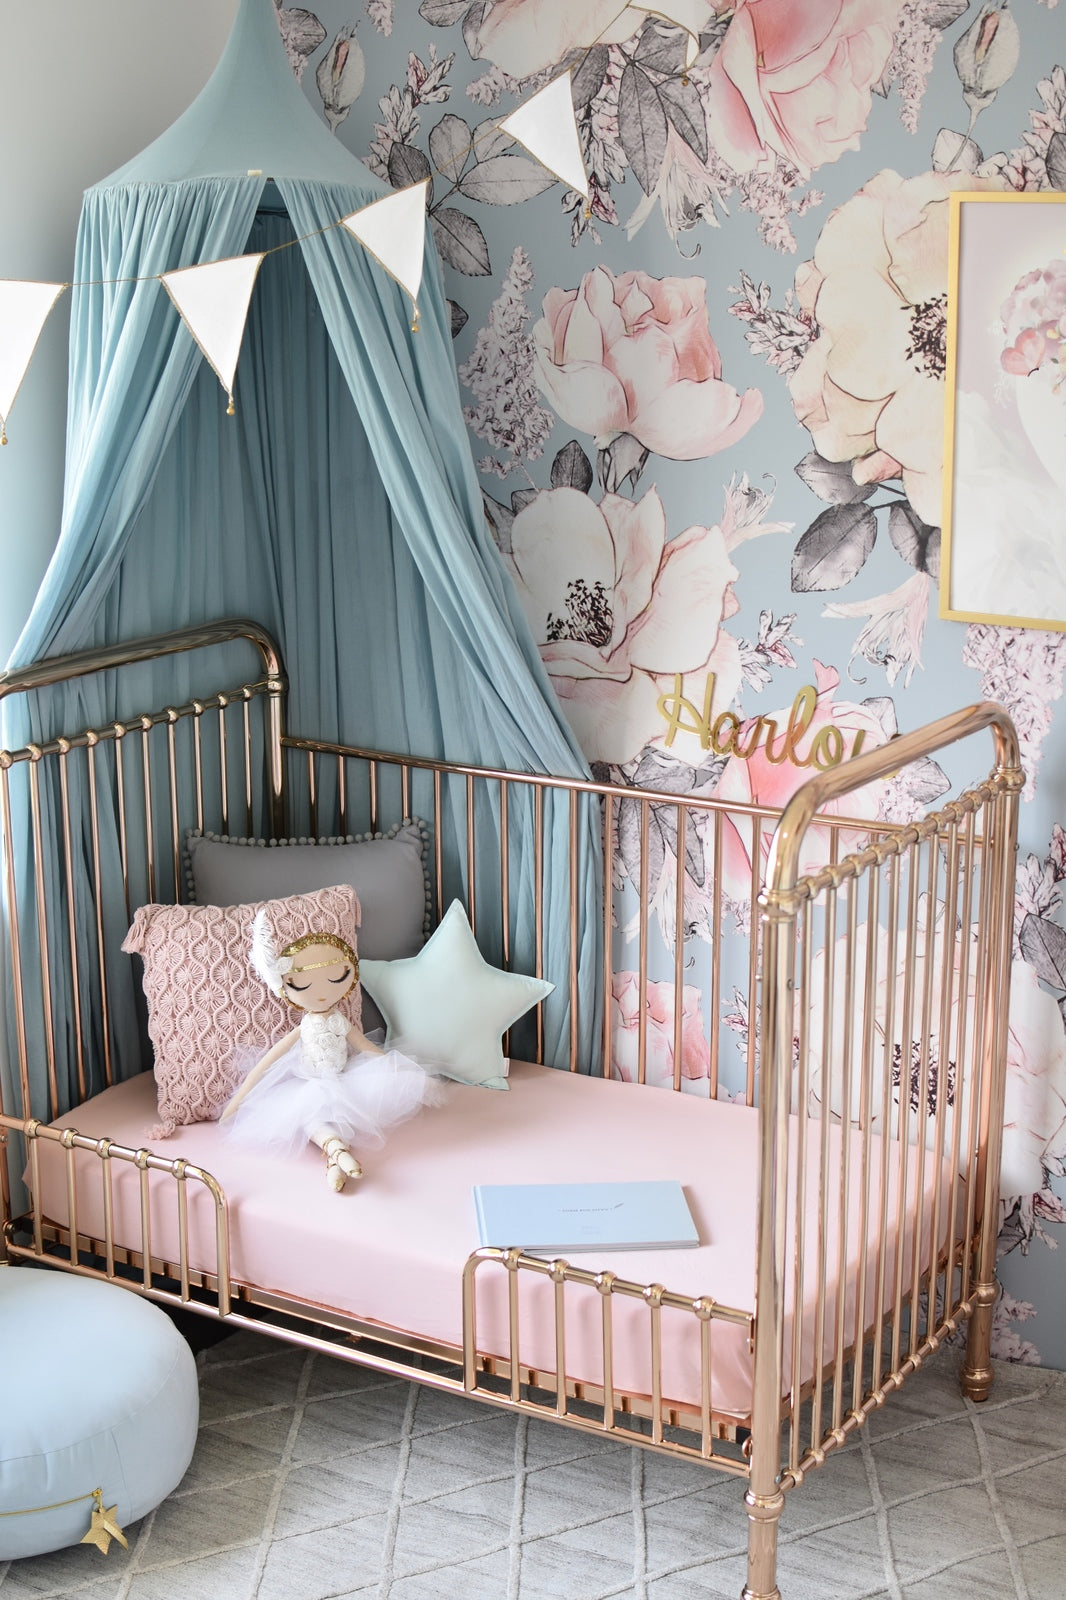 Snuggle Fitted Cot Sheet - Lullaby Pink - Angus & Dudley Collections